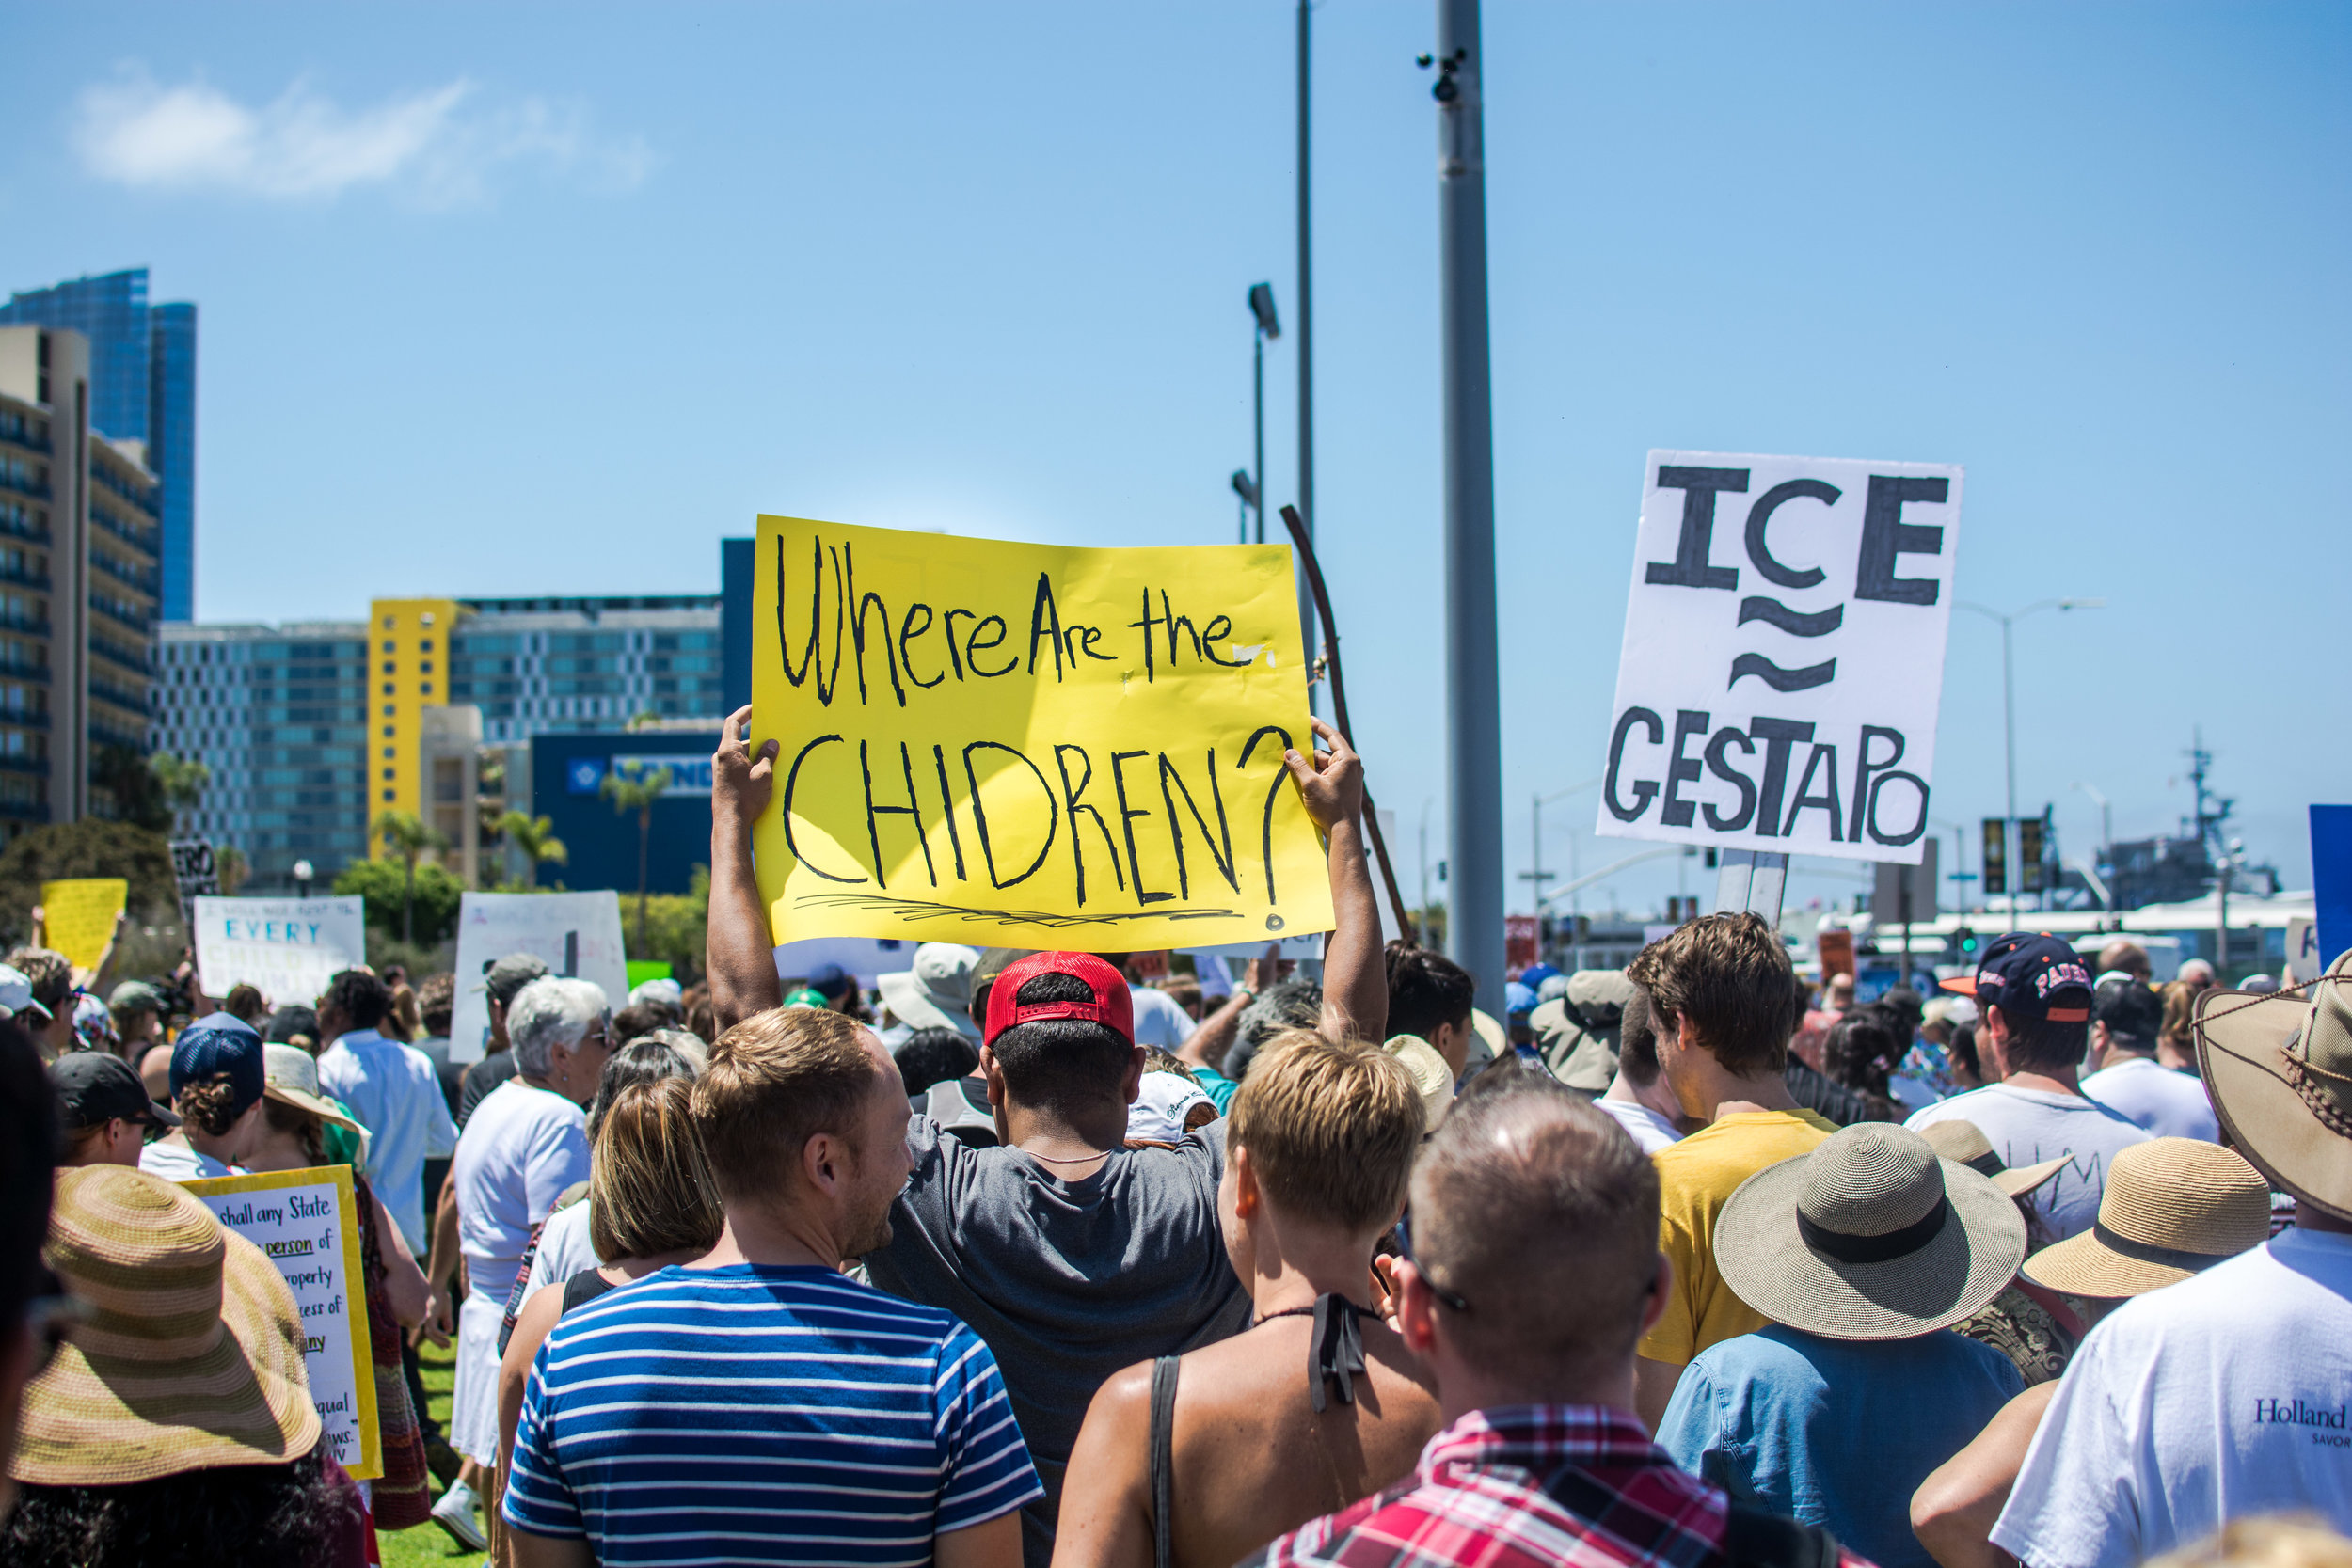 FamiliesBelongTogetherMarch-13.jpg